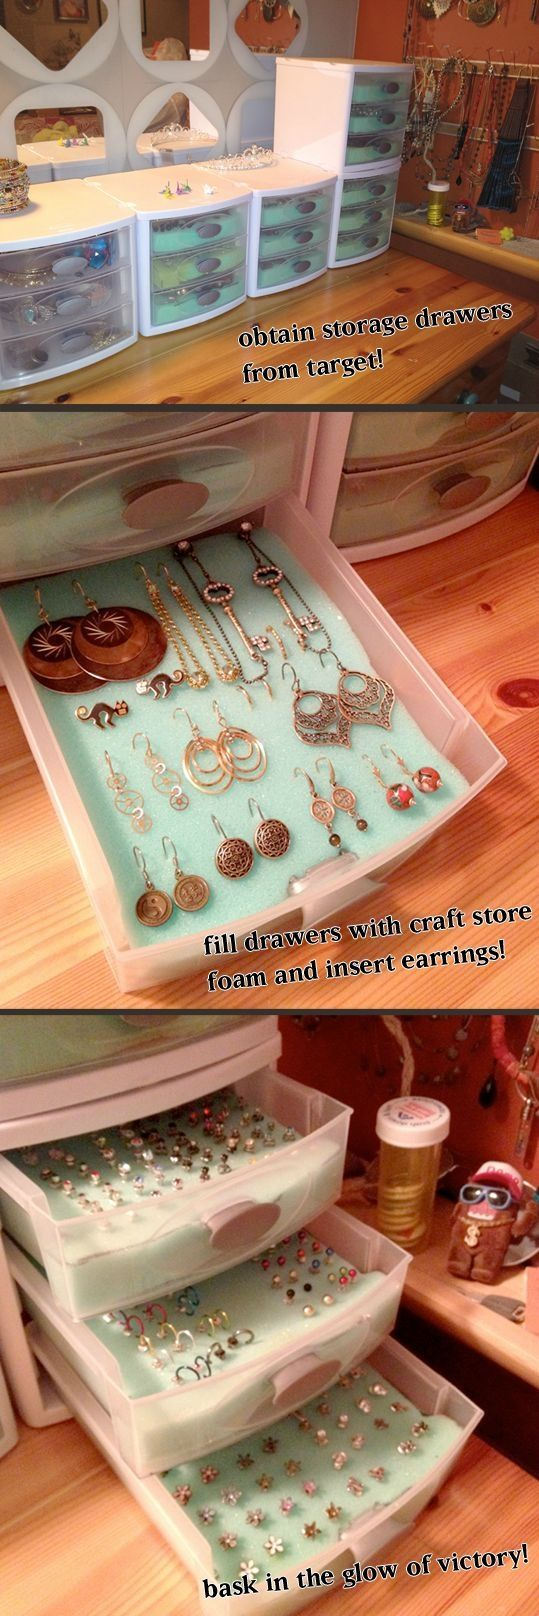 Storage idea for earrings! (I already store my earrings in this, but didn't know how to keep them from getting tangled! Now I do!) | Darling Stuff